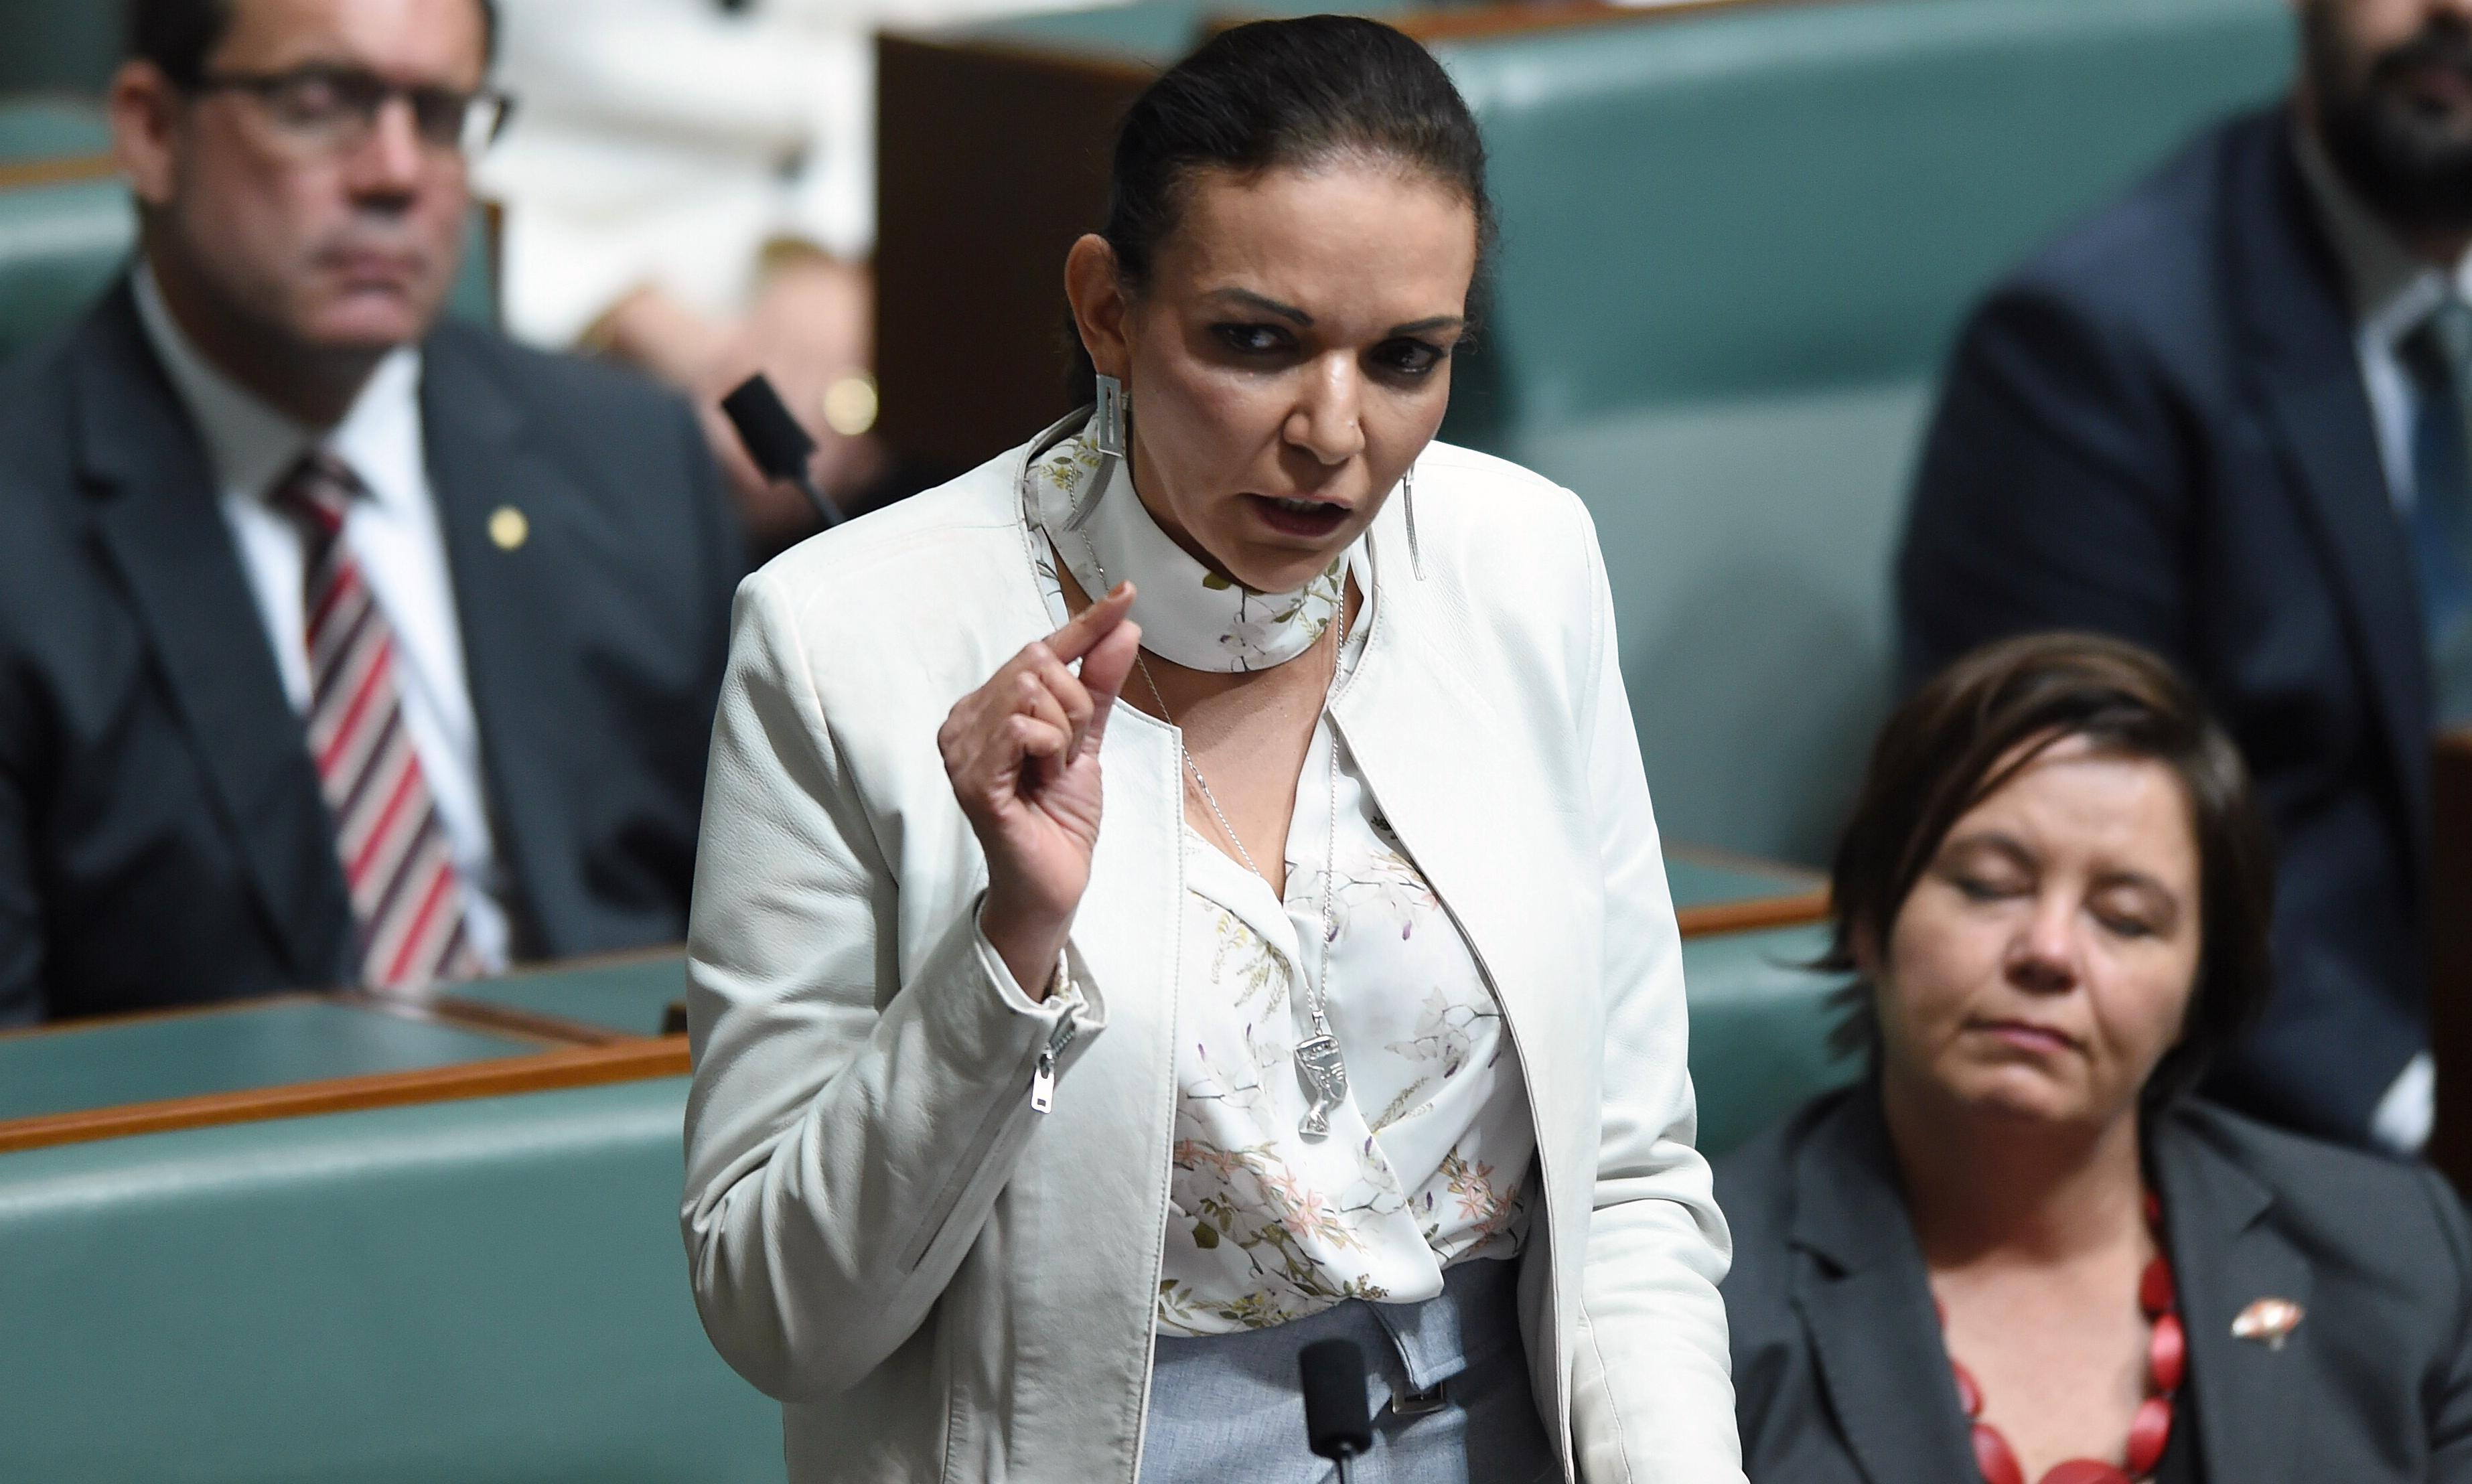 Labor pushes for greater response to extreme rightwing terrorism threat